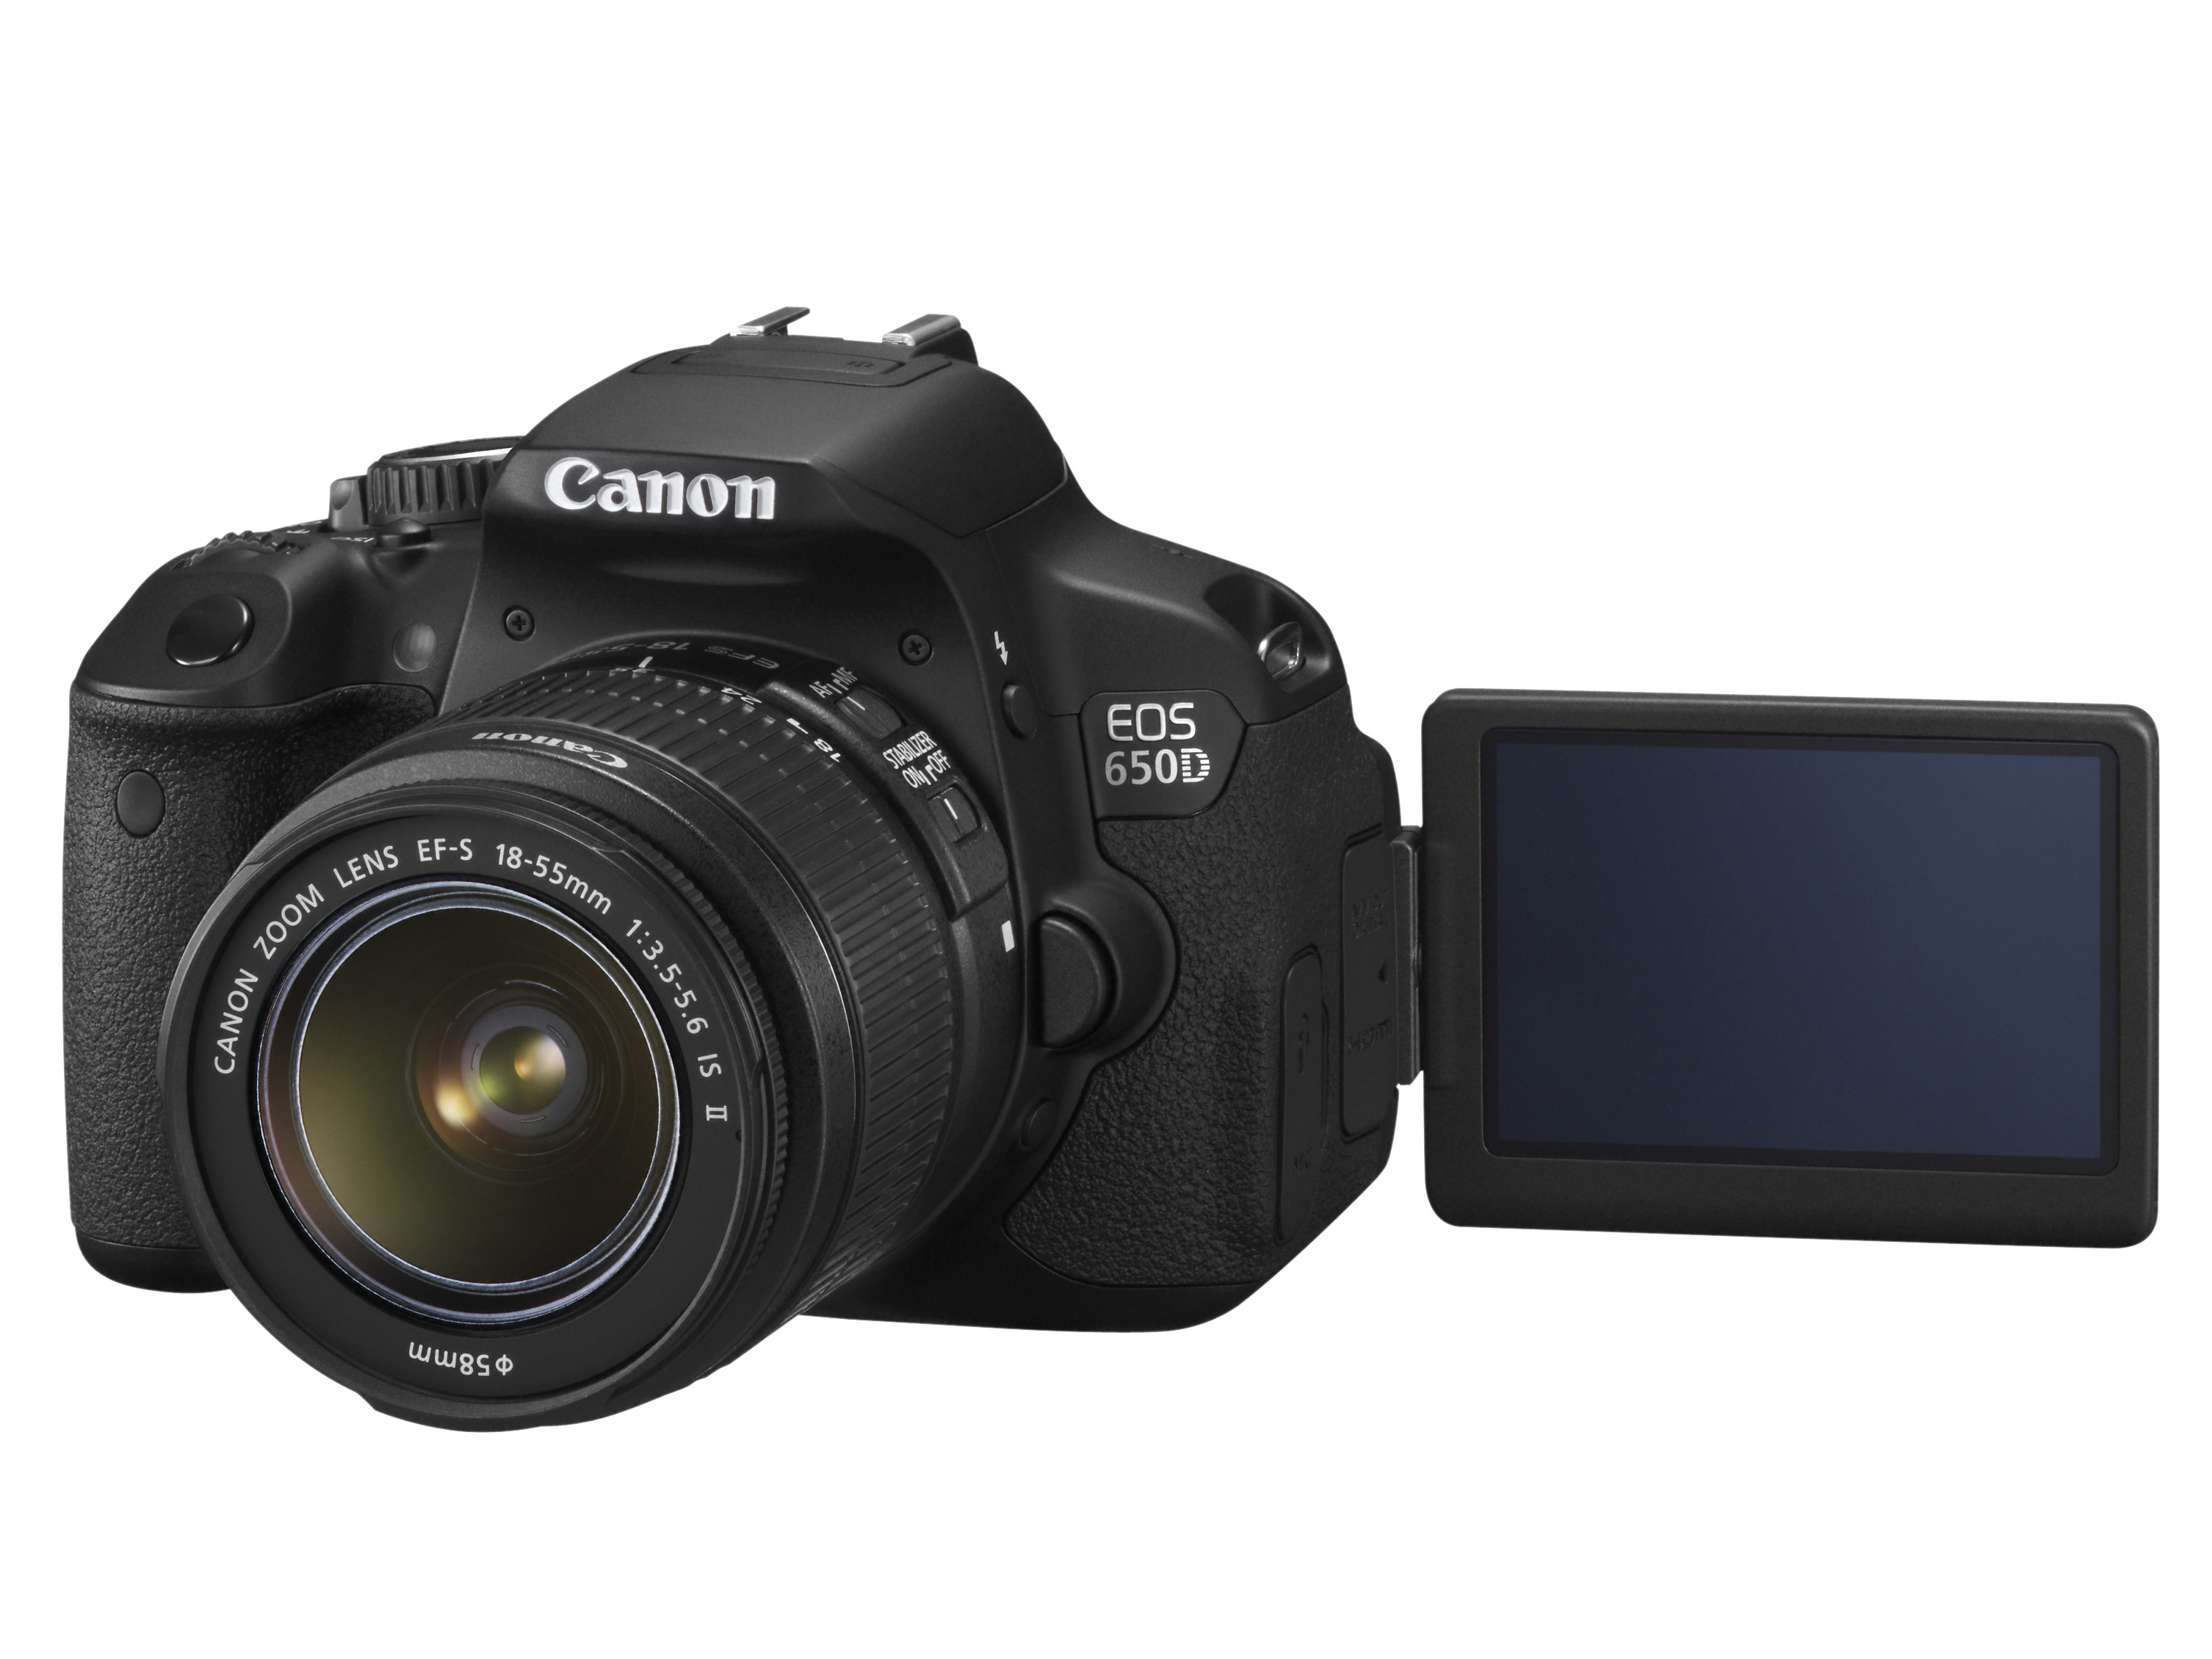 Howling Canon Unveils New Eos Get Intouch Your Side Canon Announces Eos Rebel Dslr Canon Eos 650 Value Canon Eos 650 Battery dpreview Canon Eos 650